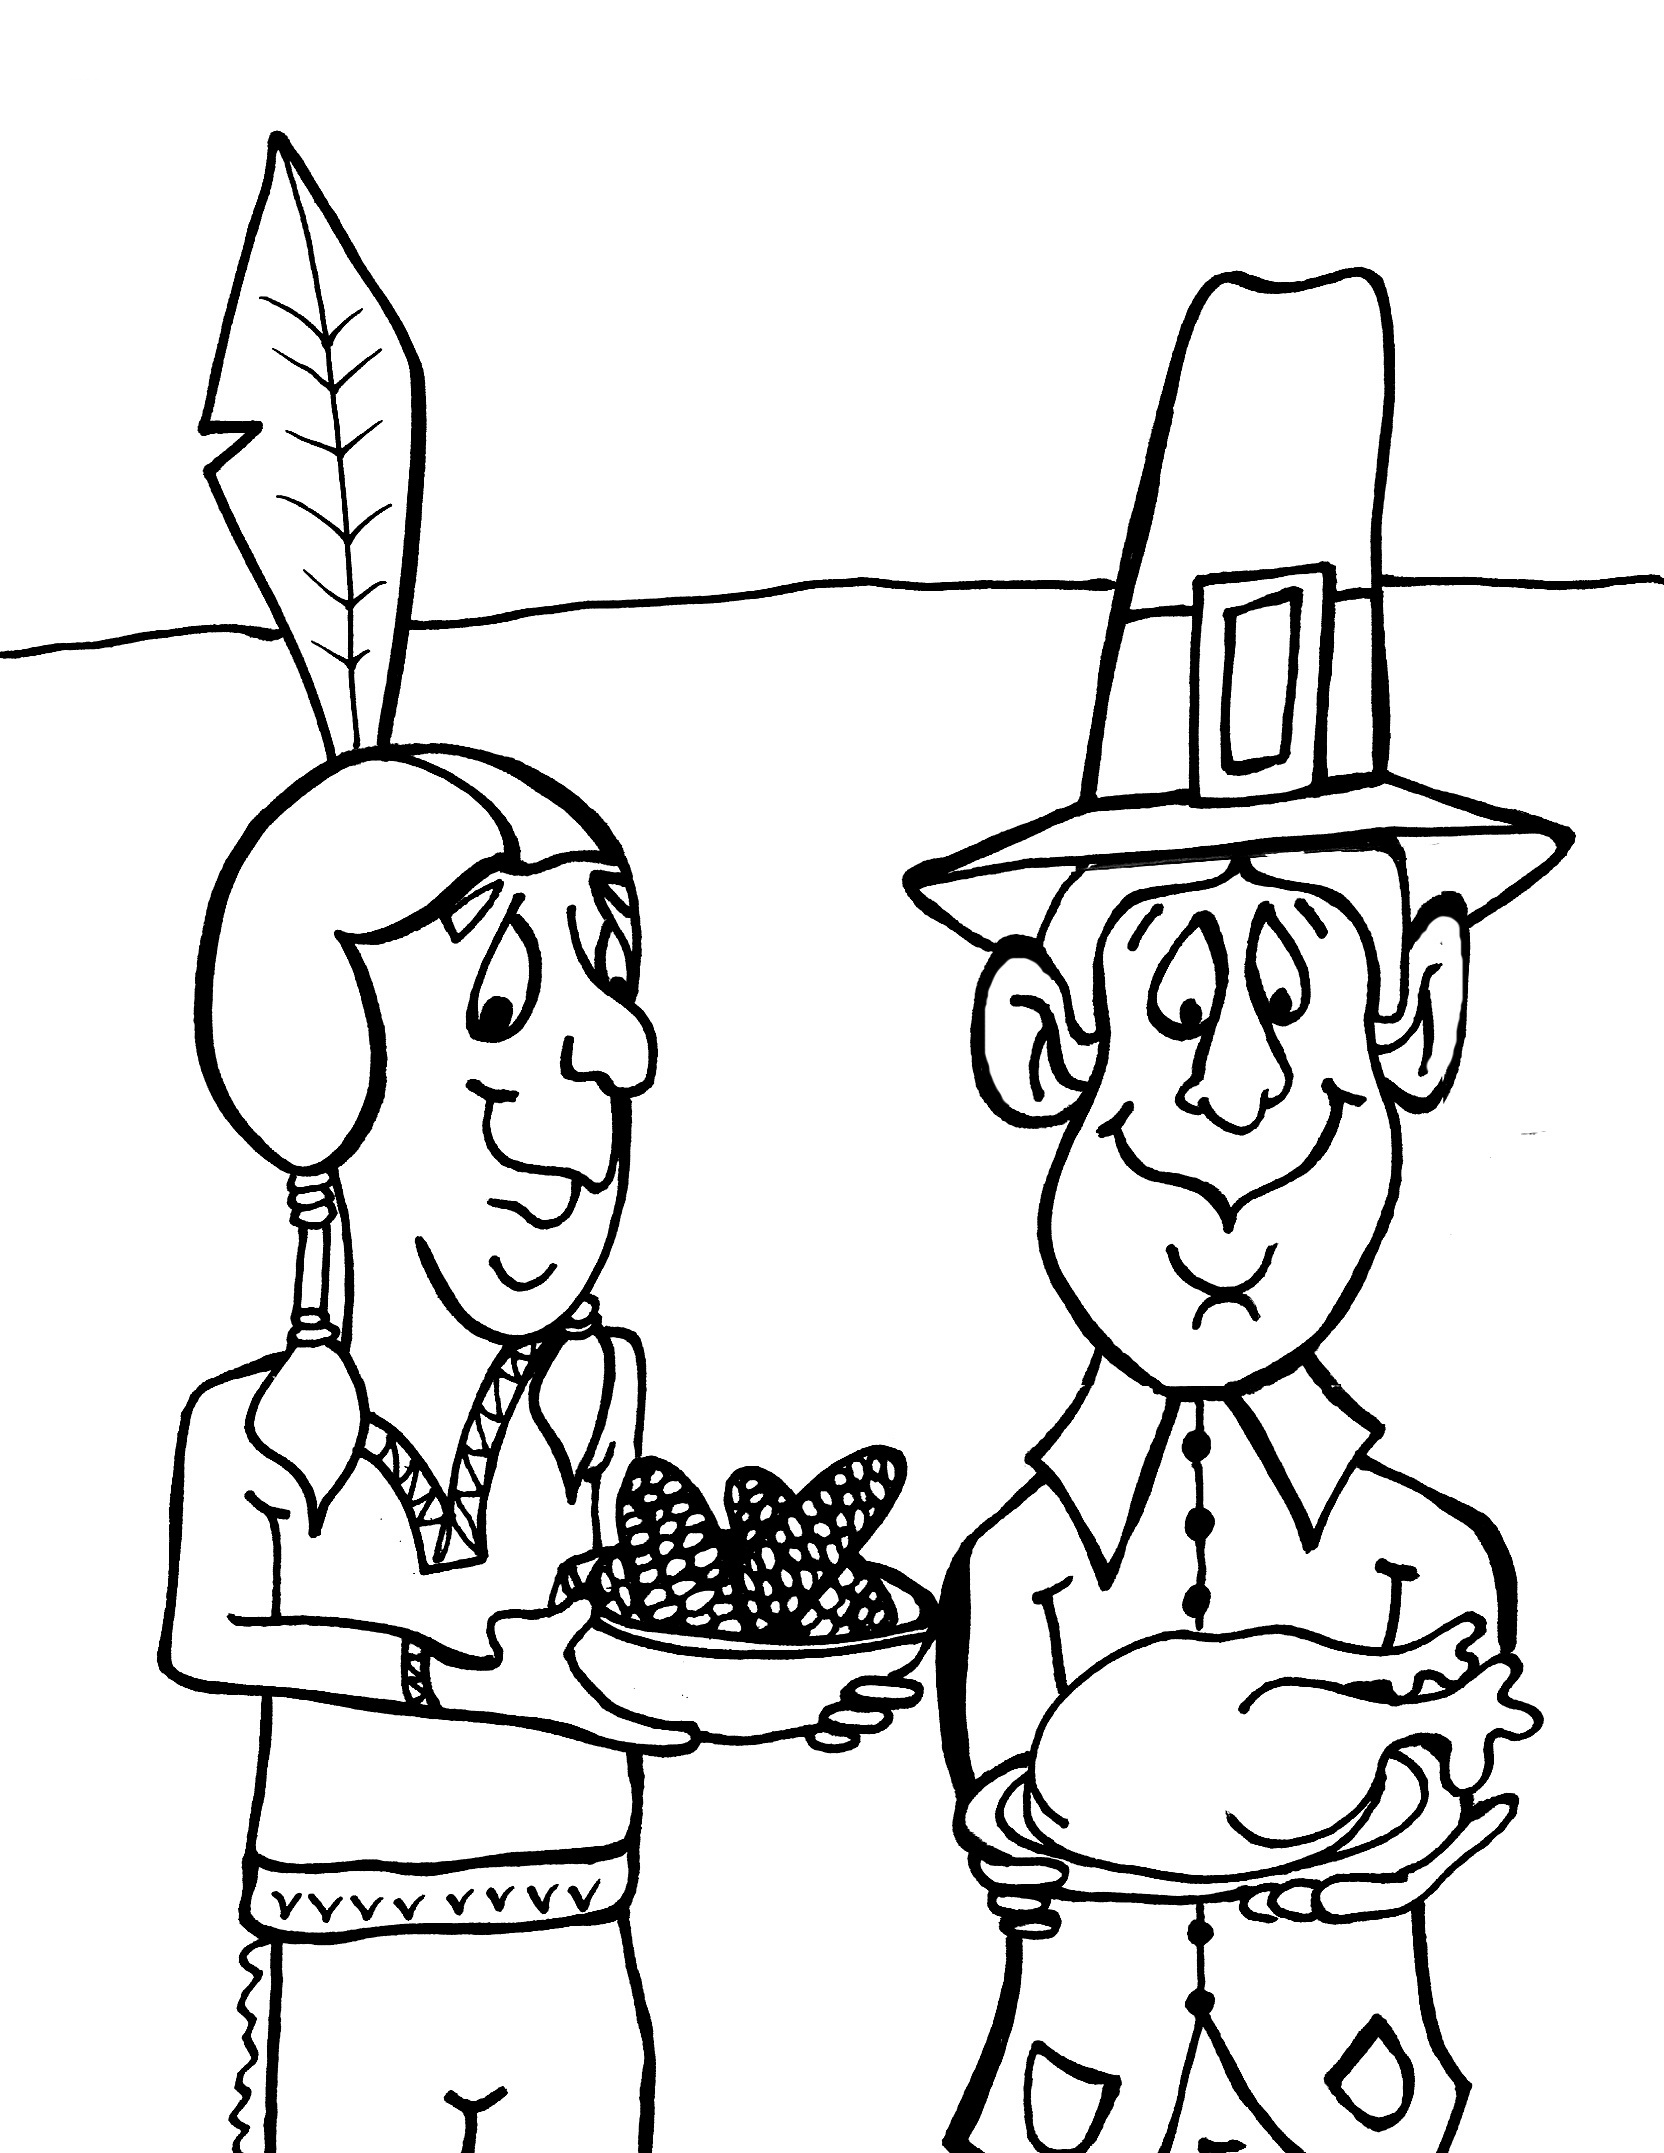 thansgiving printible coloring pages - photo#26